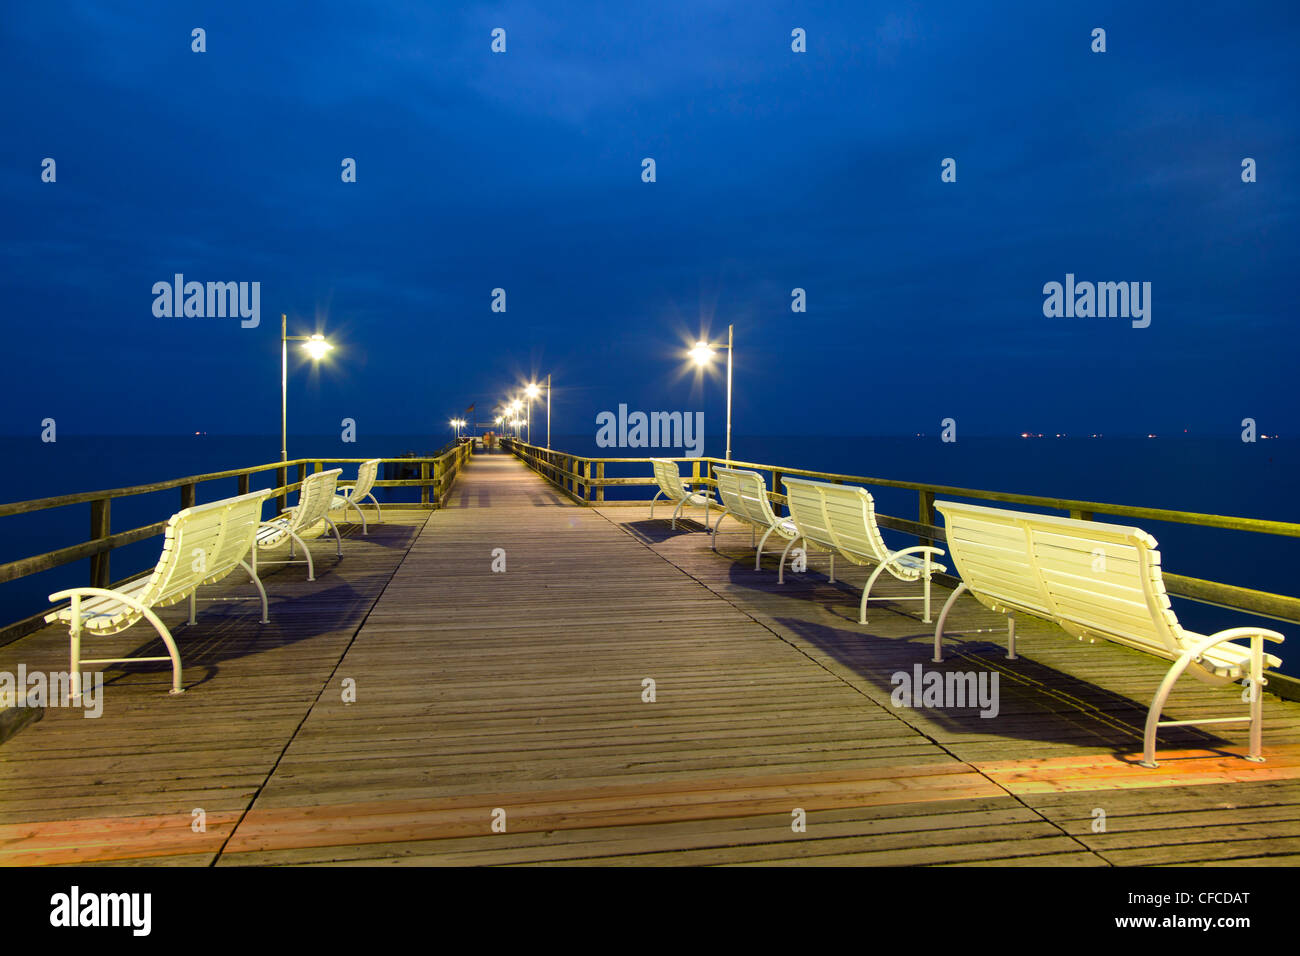 Benches on the pier in the evening, Bansin seaside resort, Usedom island, Baltic Sea, Mecklenburg-West Pomerania, - Stock Image